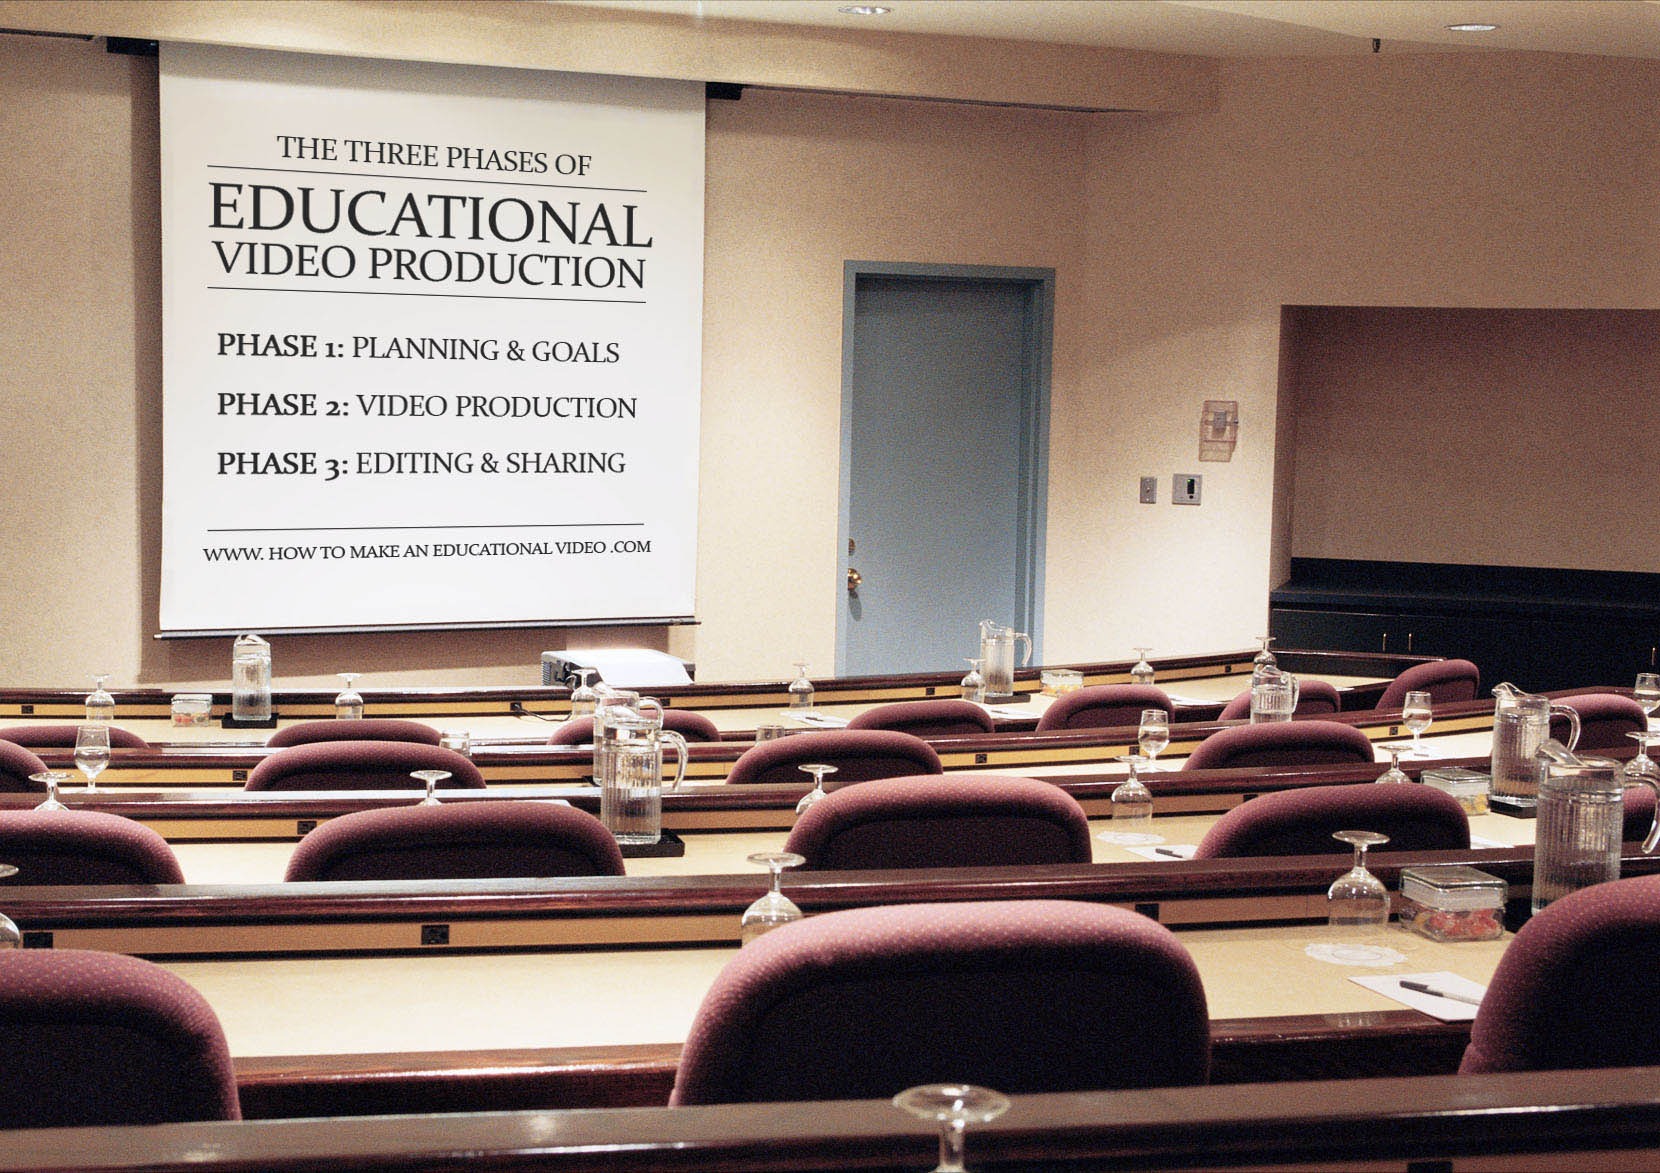 The Three Phases of Educational Video Production